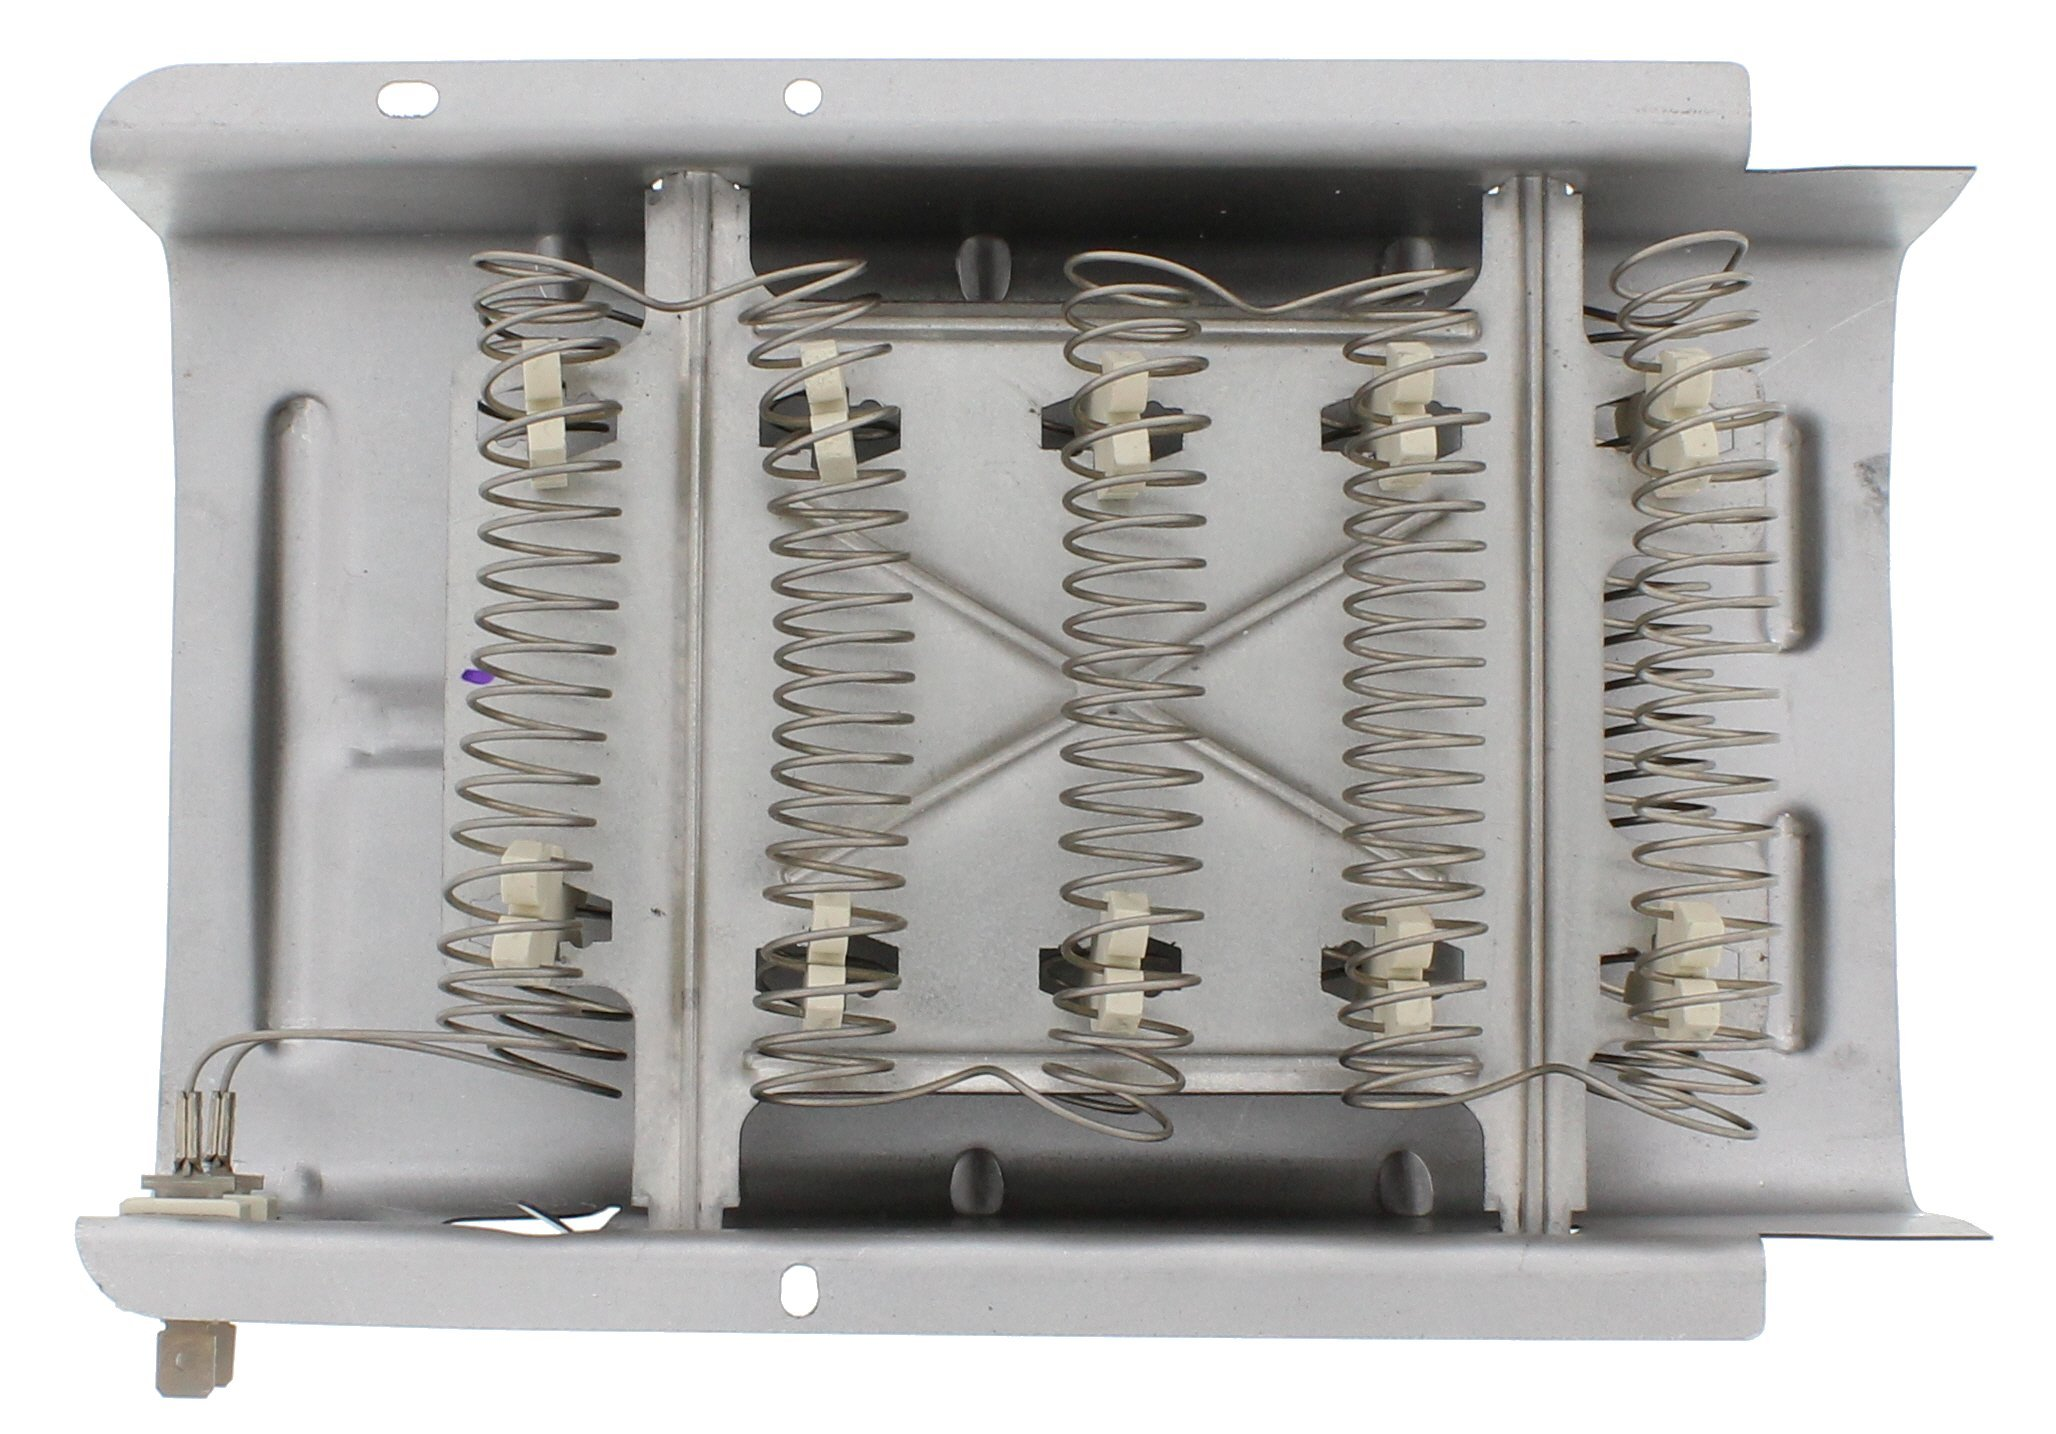 Whirlpool Dryer Heating Element Replacement